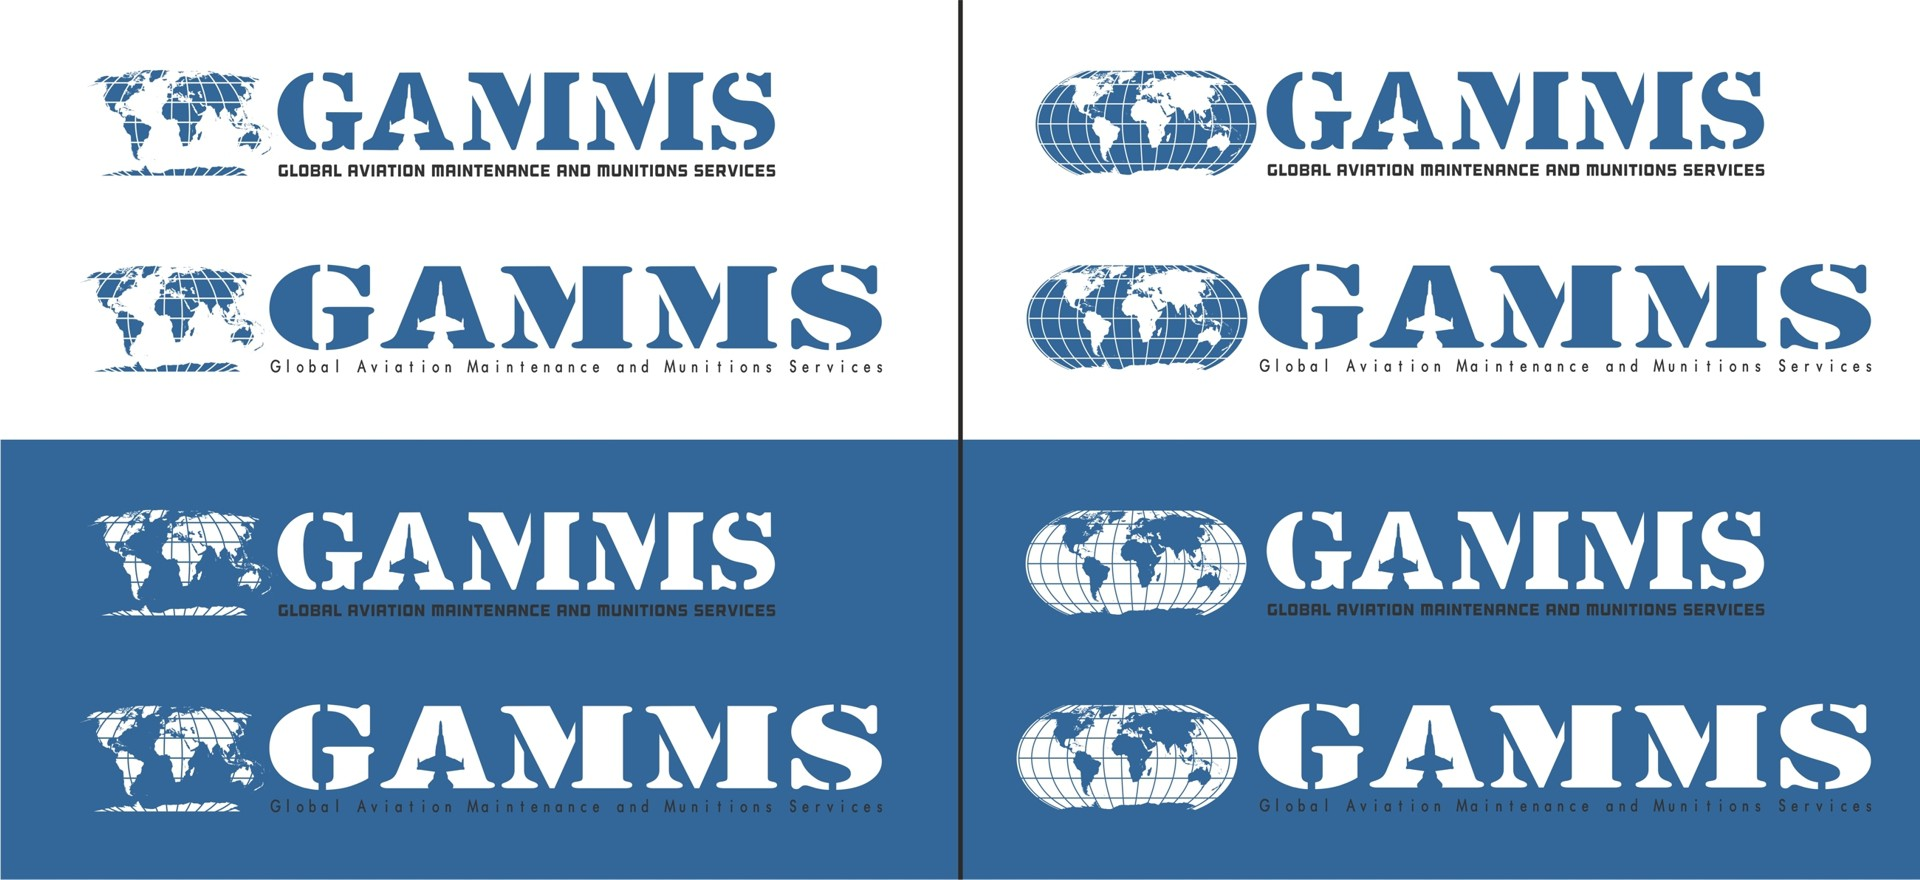 Create a Winning logo for Global Aviation Maintenance and Munitions Services